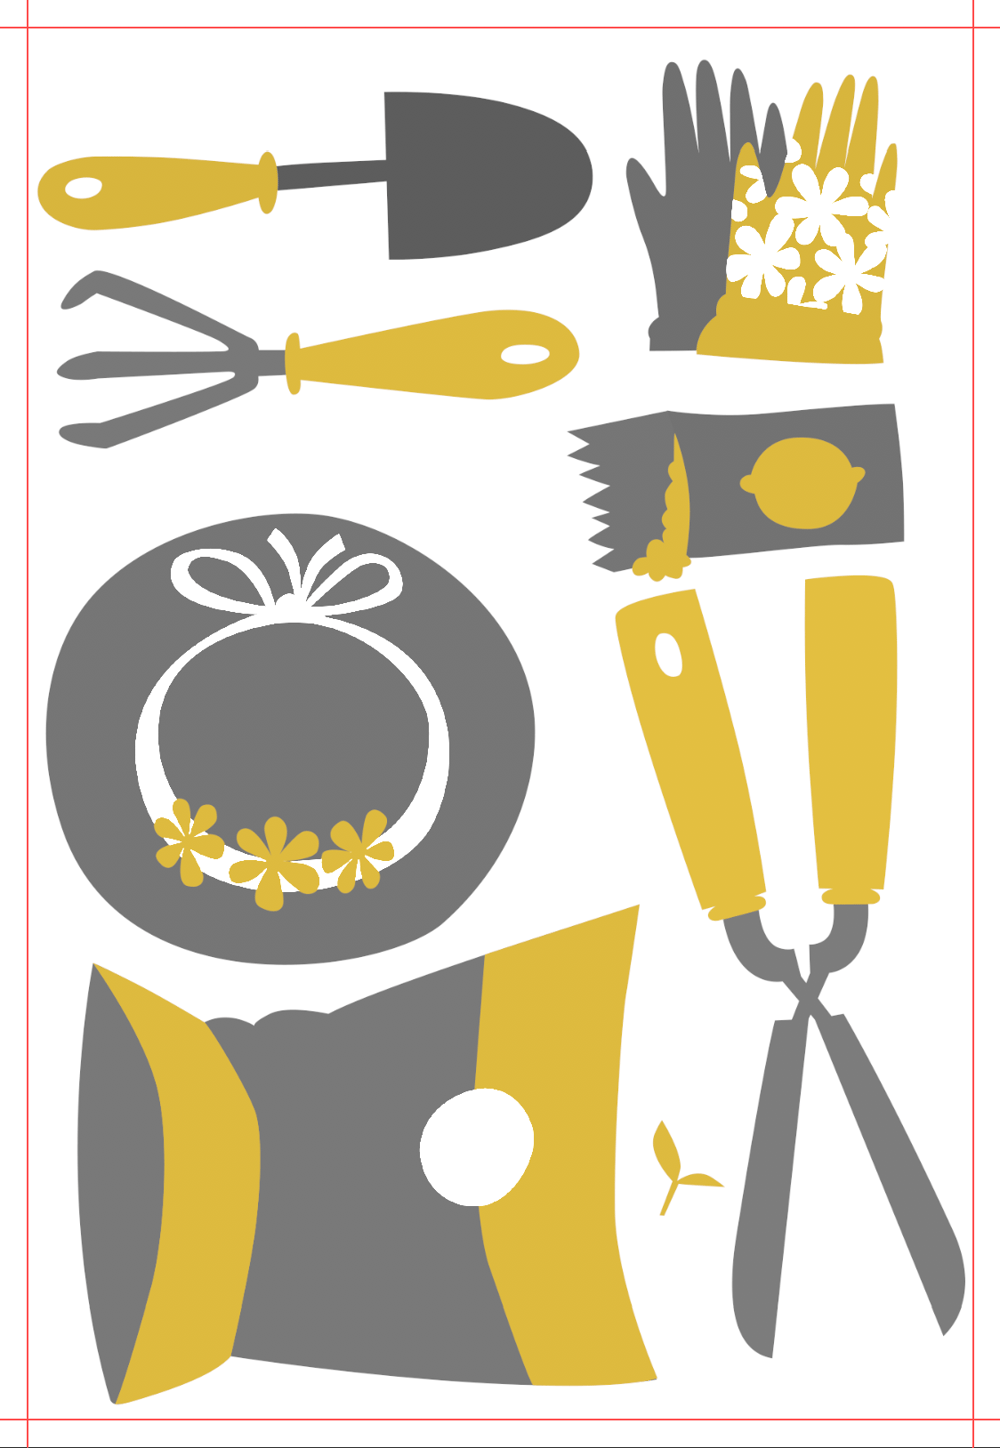 Gardening - image 2 - student project